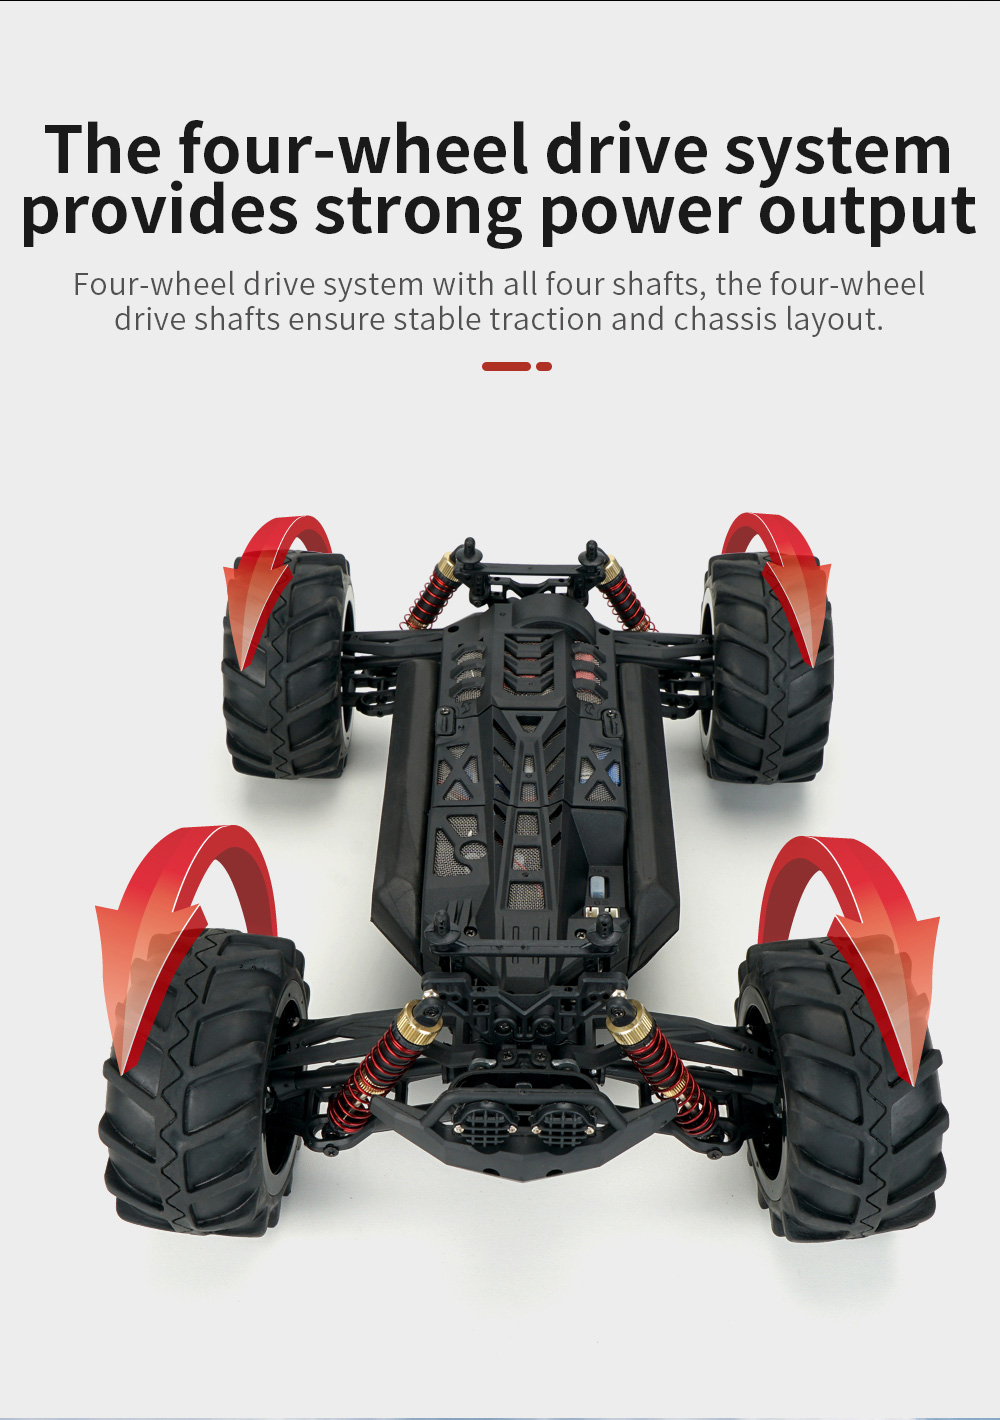 JJRC Q125 RC Crawler Truck Toy - Red